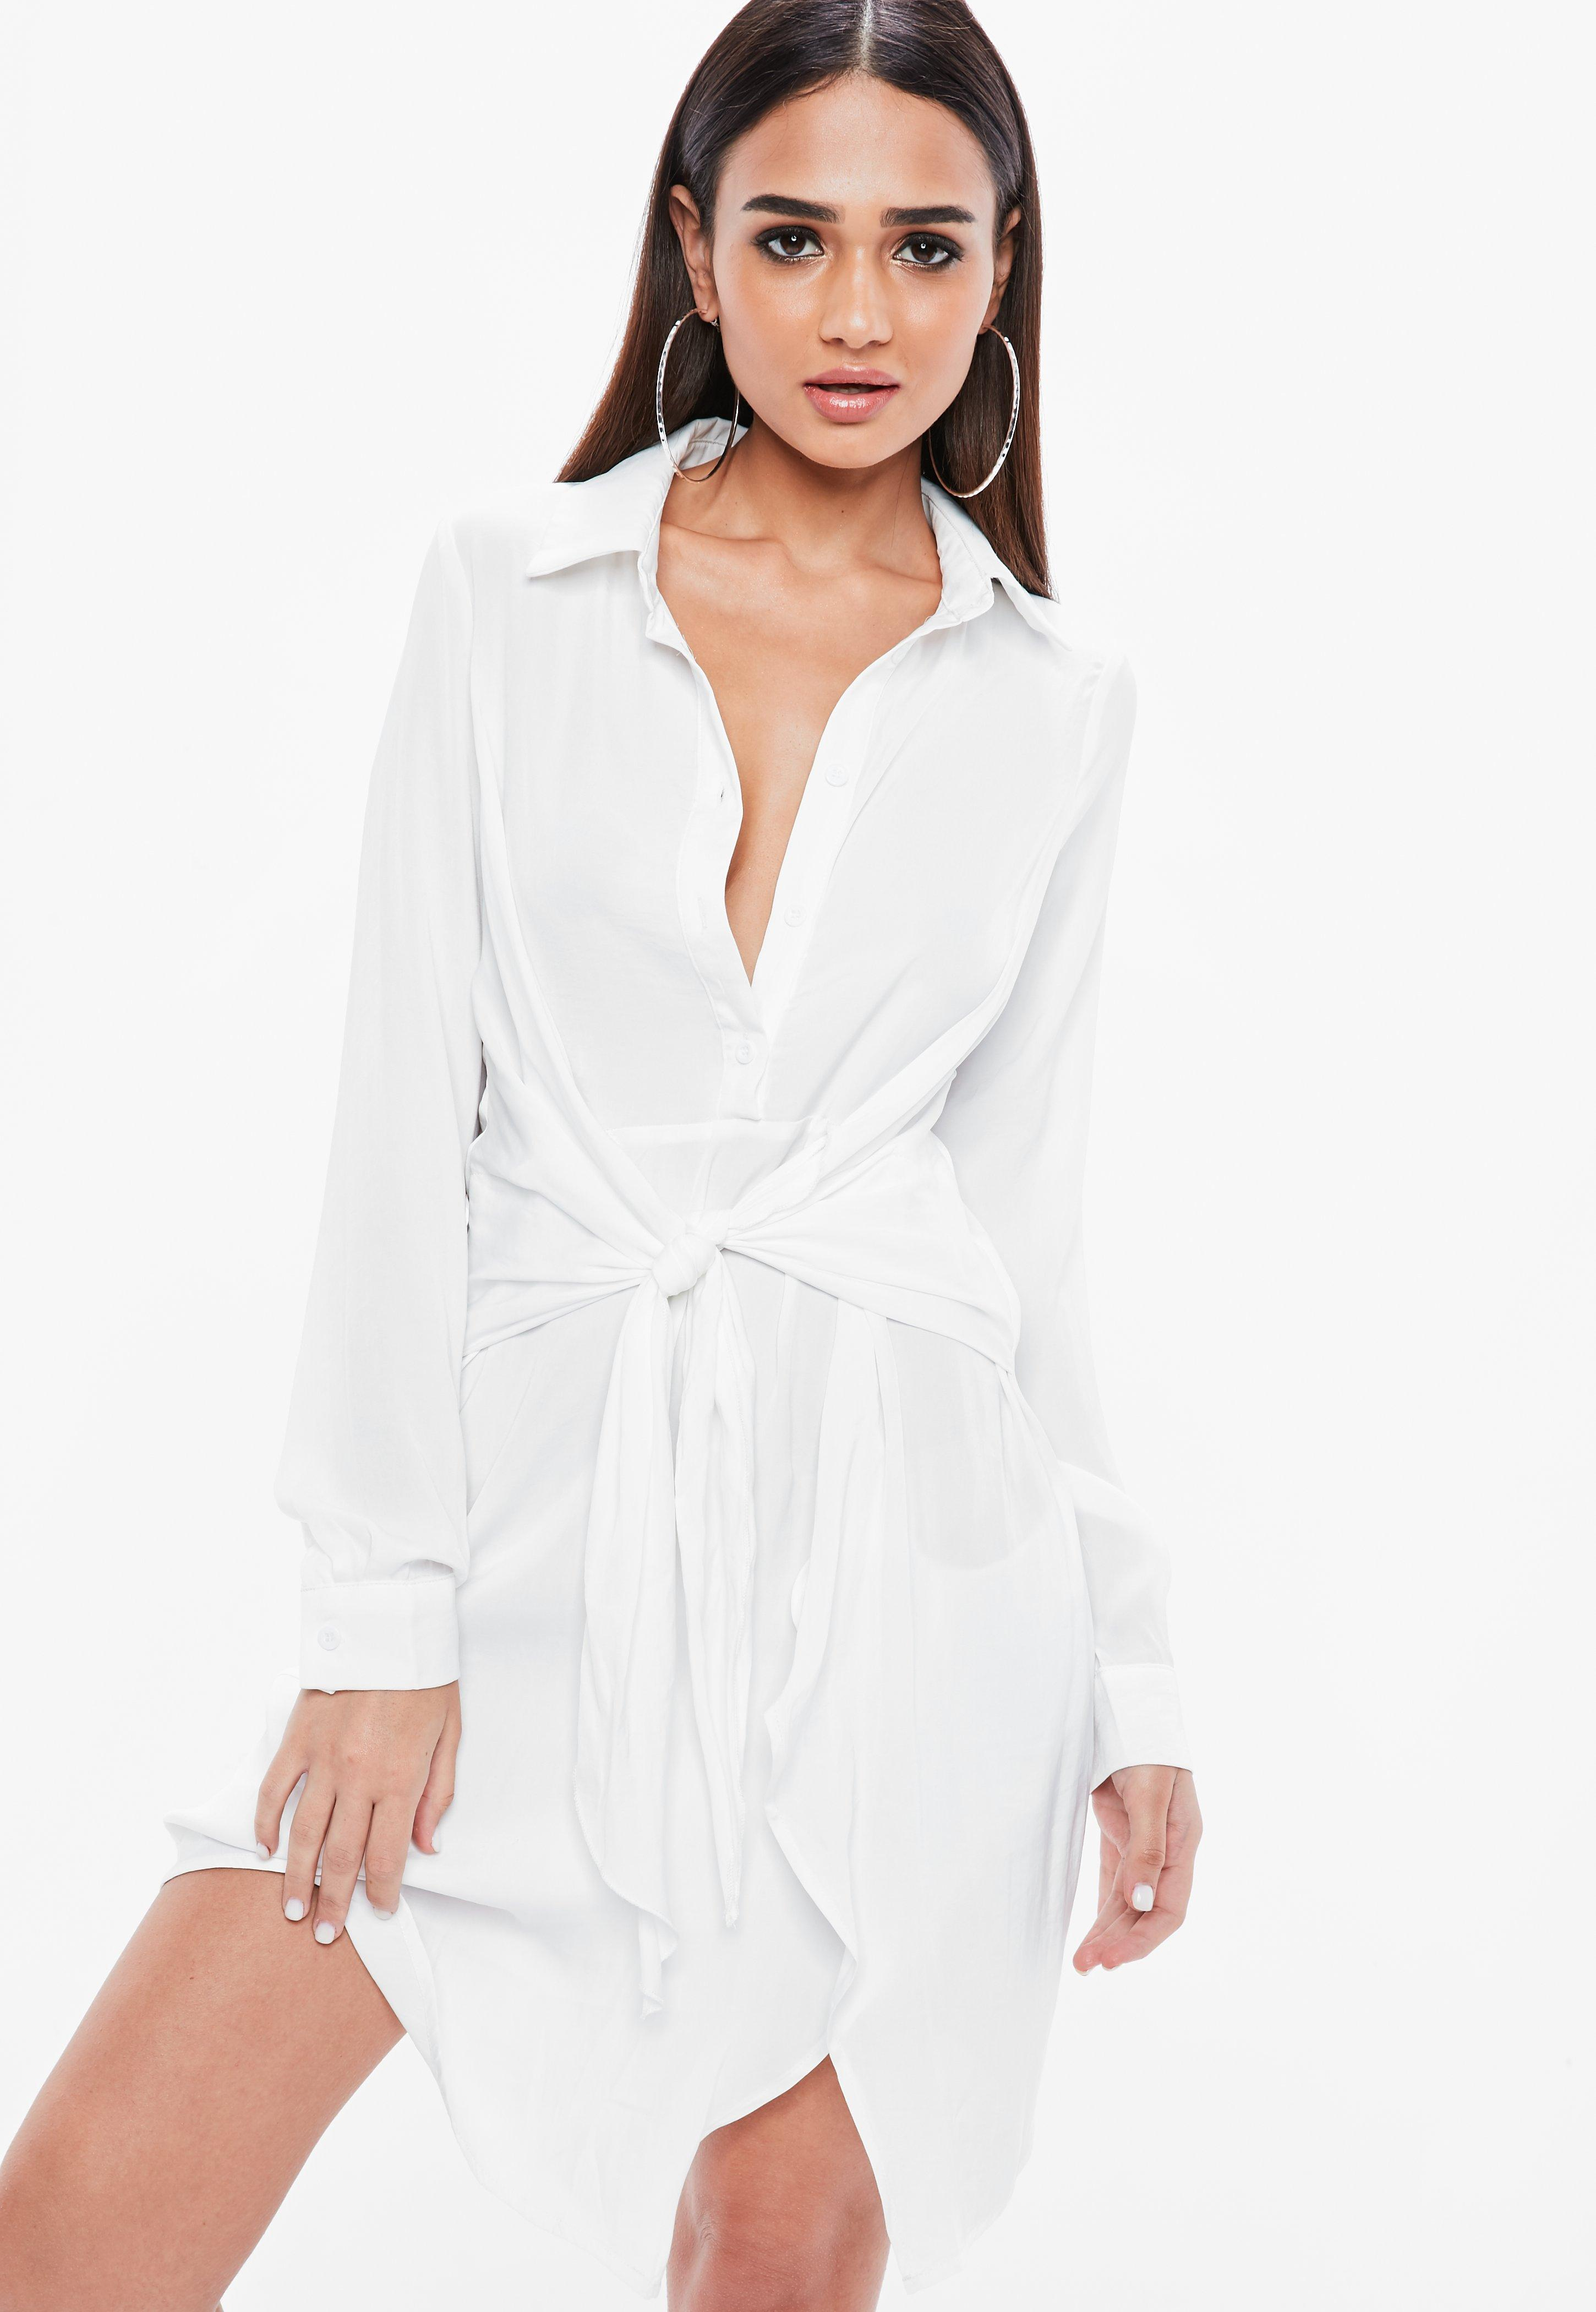 Missguided Tie Waist Satin Shirt Dress Largest Supplier Cheap Online 1D8R5